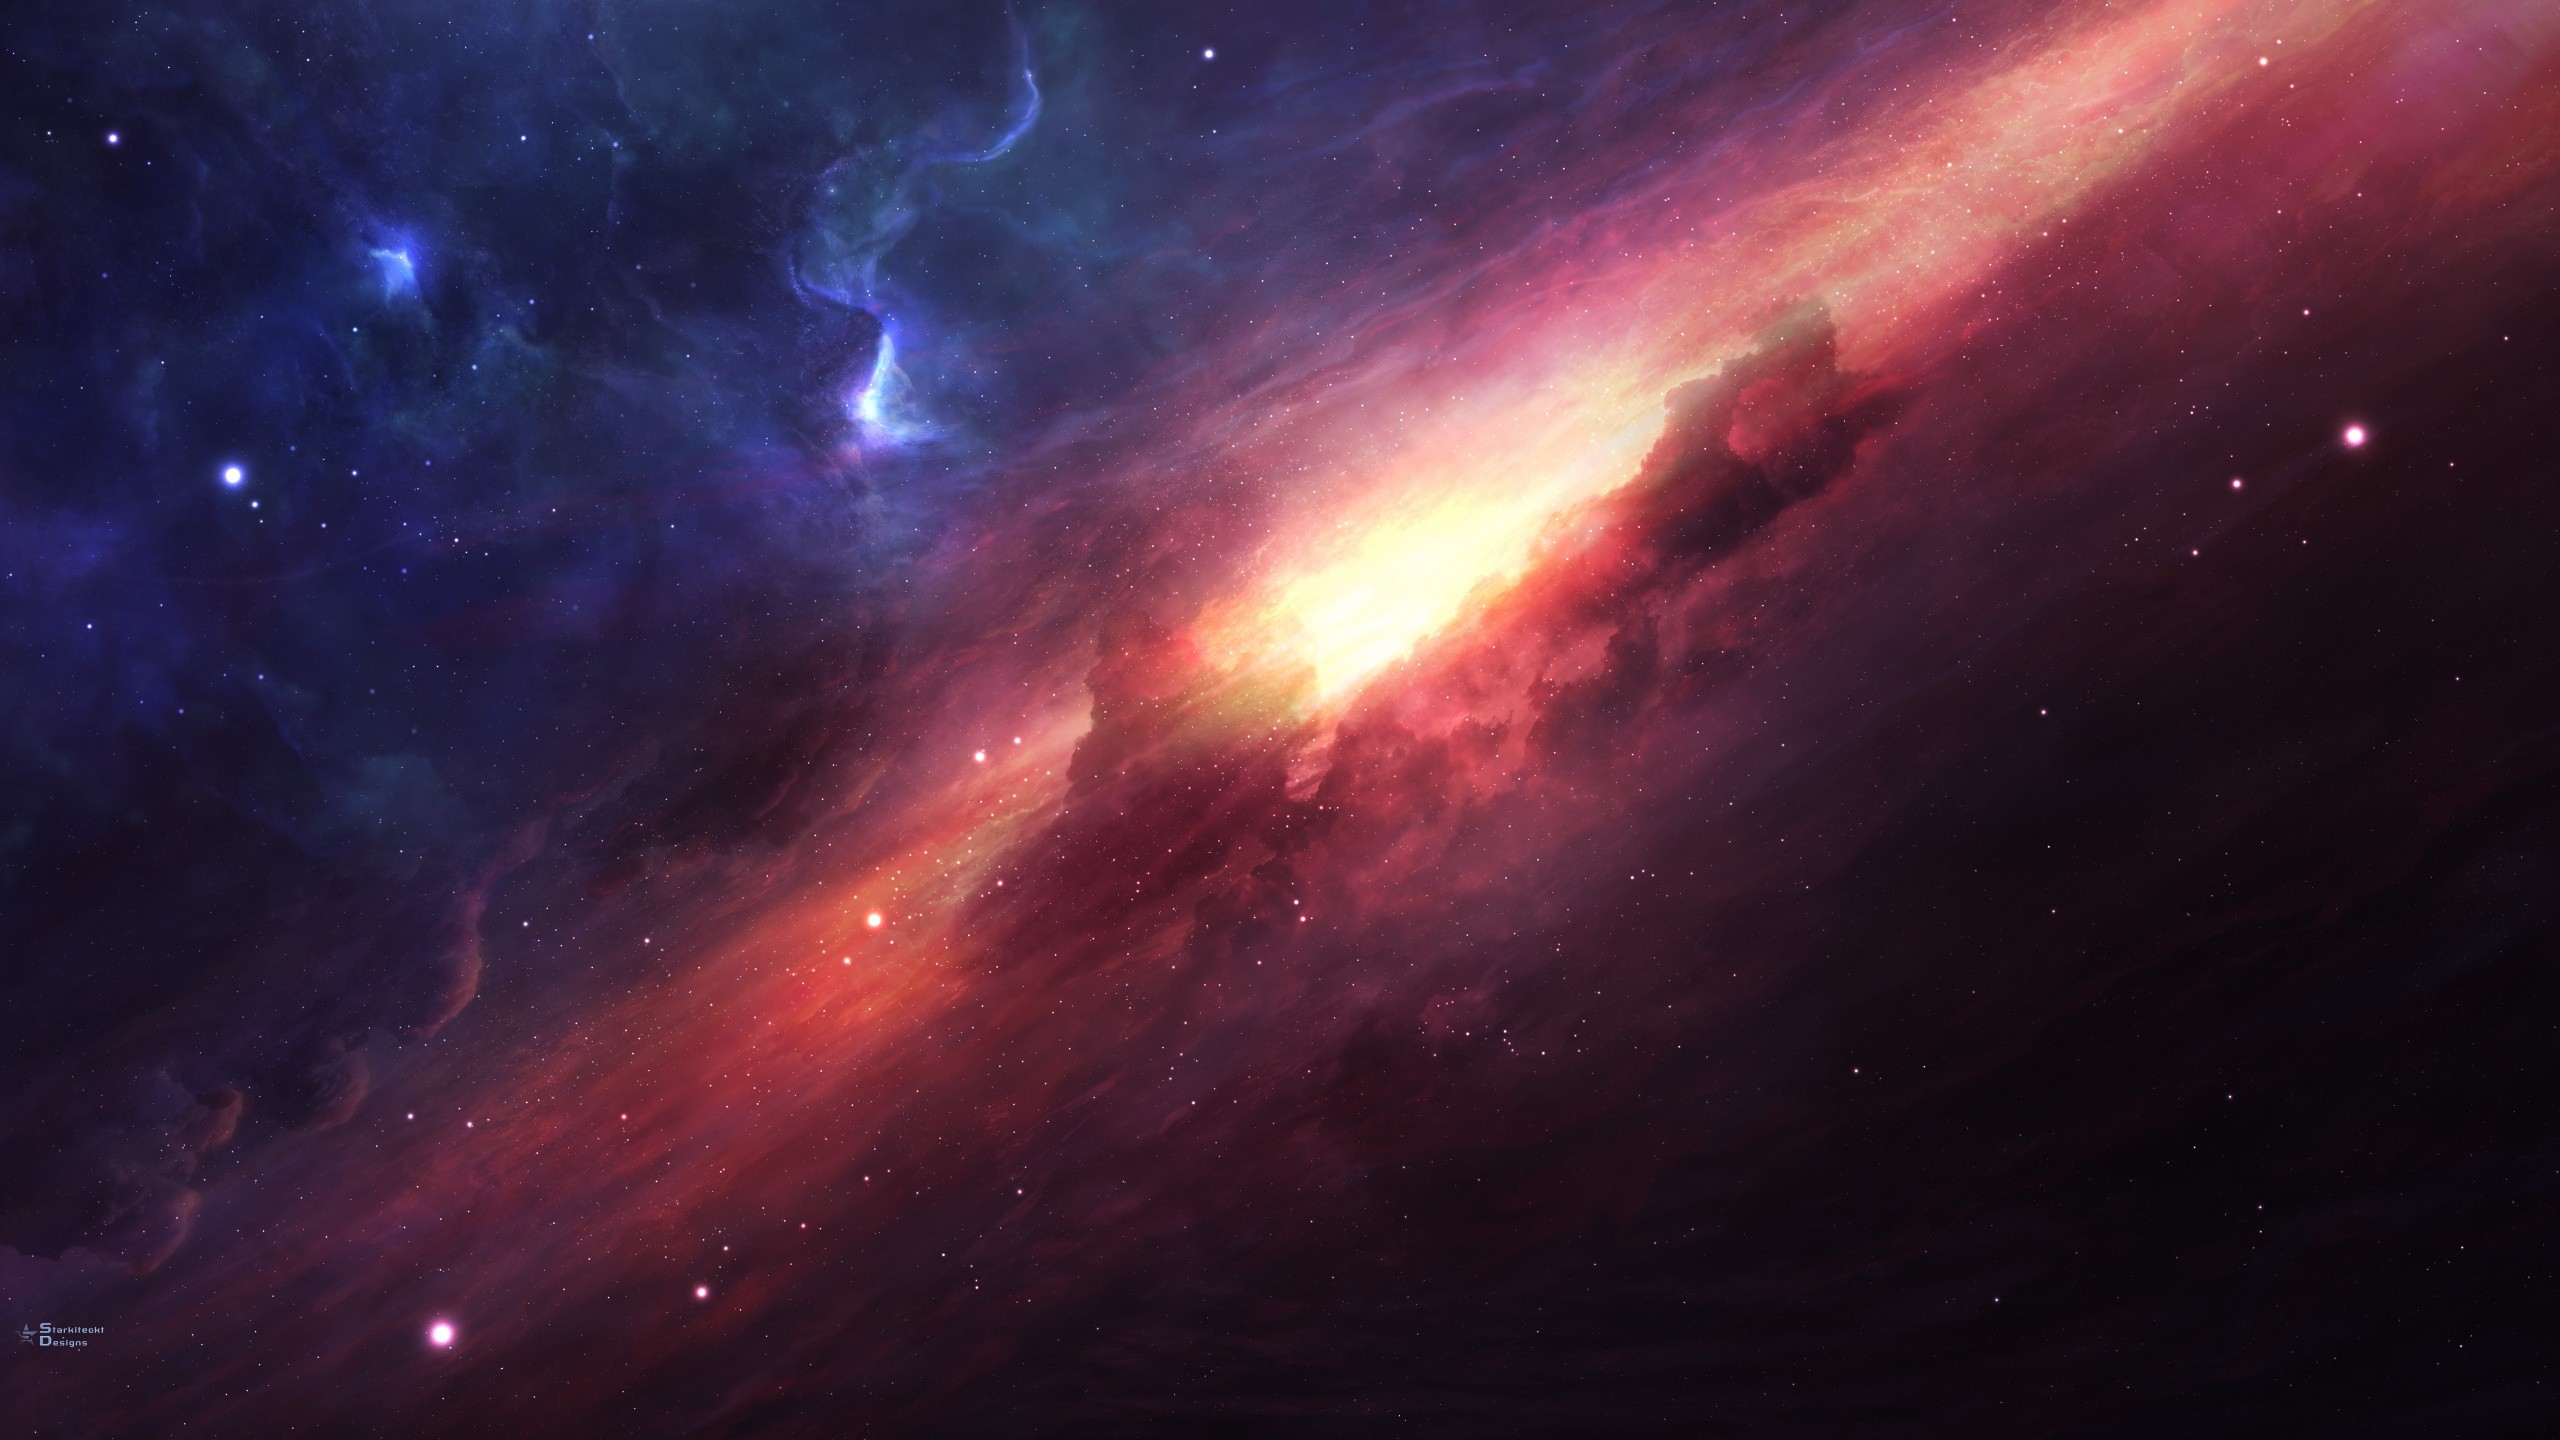 Space Wallpaper 4k 1 Download Free Awesome High